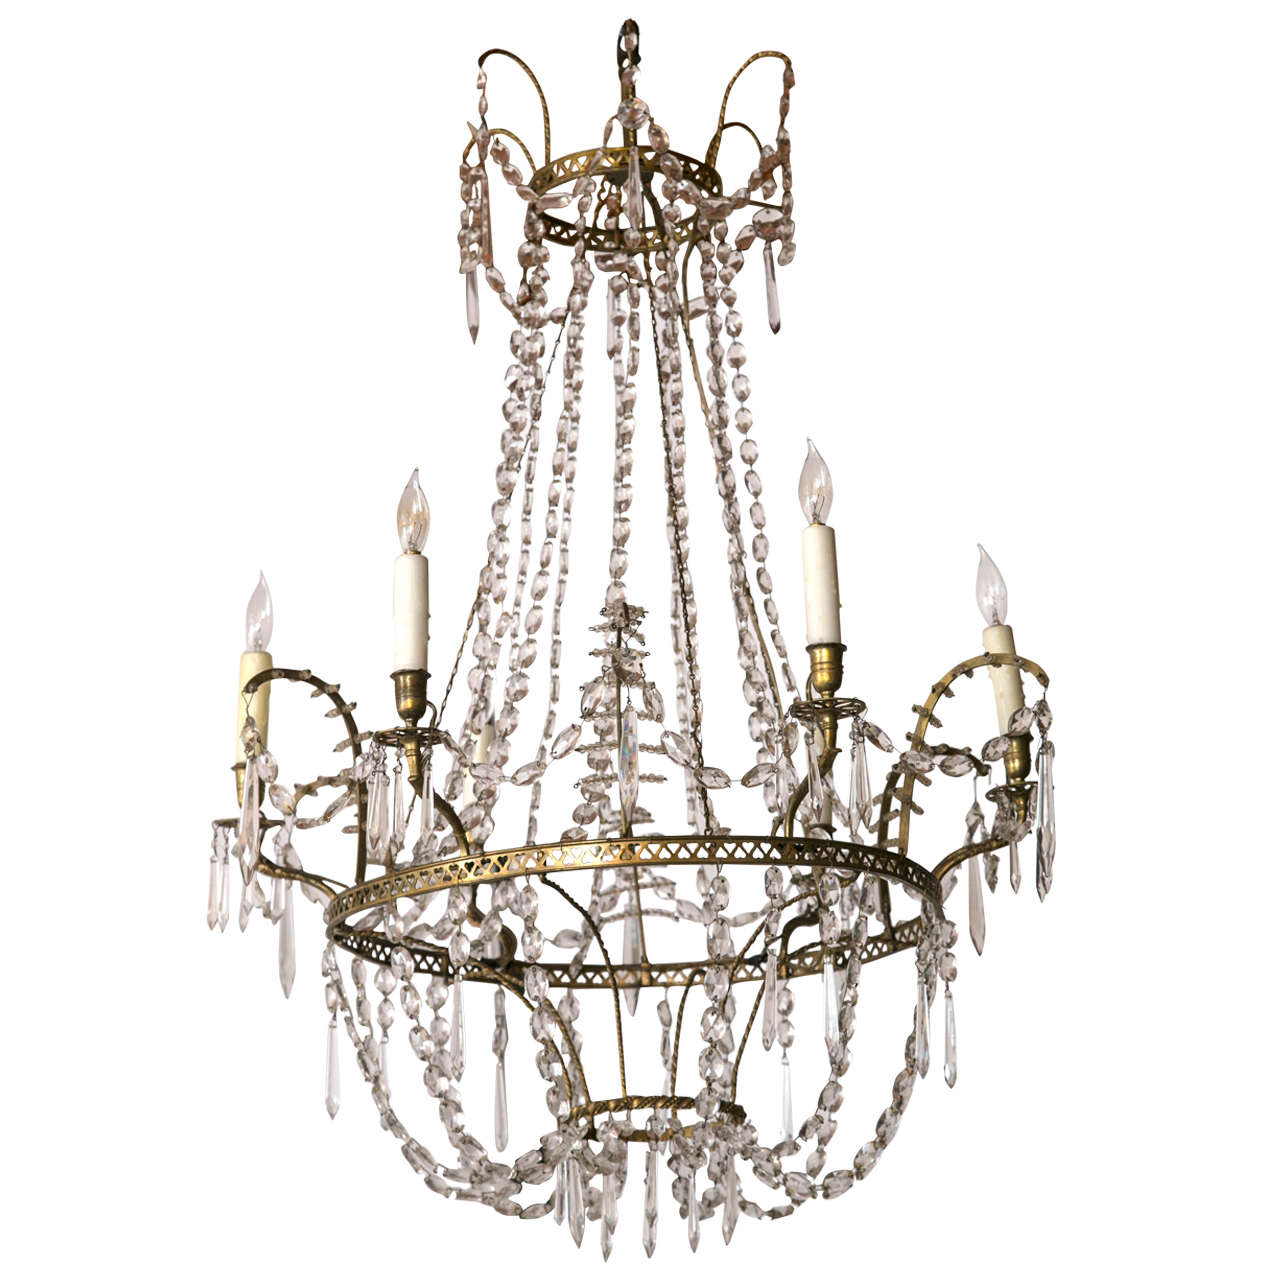 Baltic neoclassical bronze and crystal chandelier circa 1800 for baltic neoclassical bronze and crystal chandelier circa 1800 1 arubaitofo Image collections